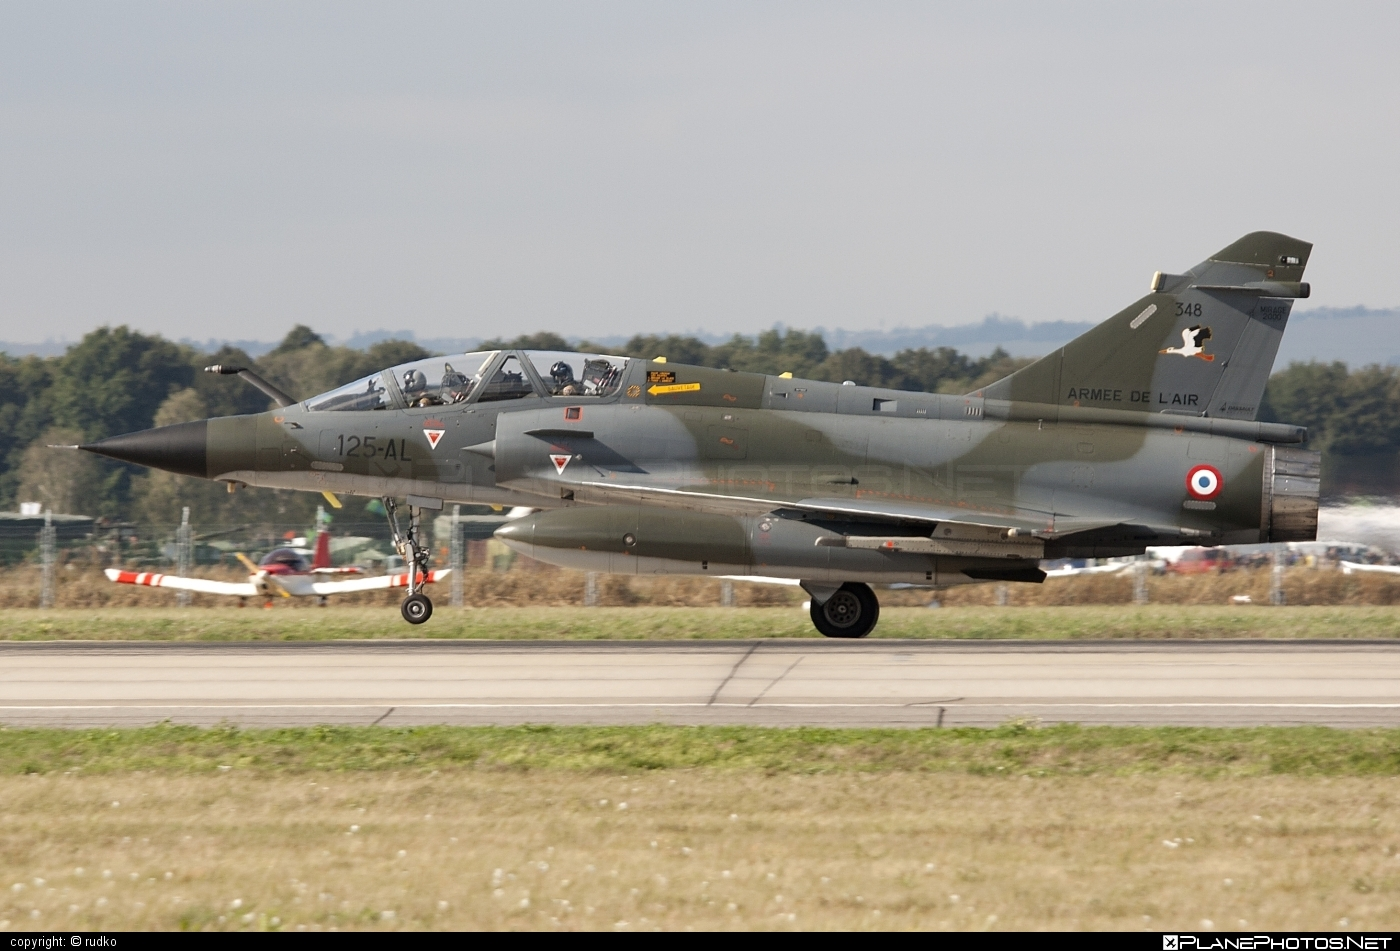 Dassault Mirage 2000N - 348 operated by Armée de l´Air (French Air Force) #armeedelair #dassault #frenchairforce #natodays #natodays2012